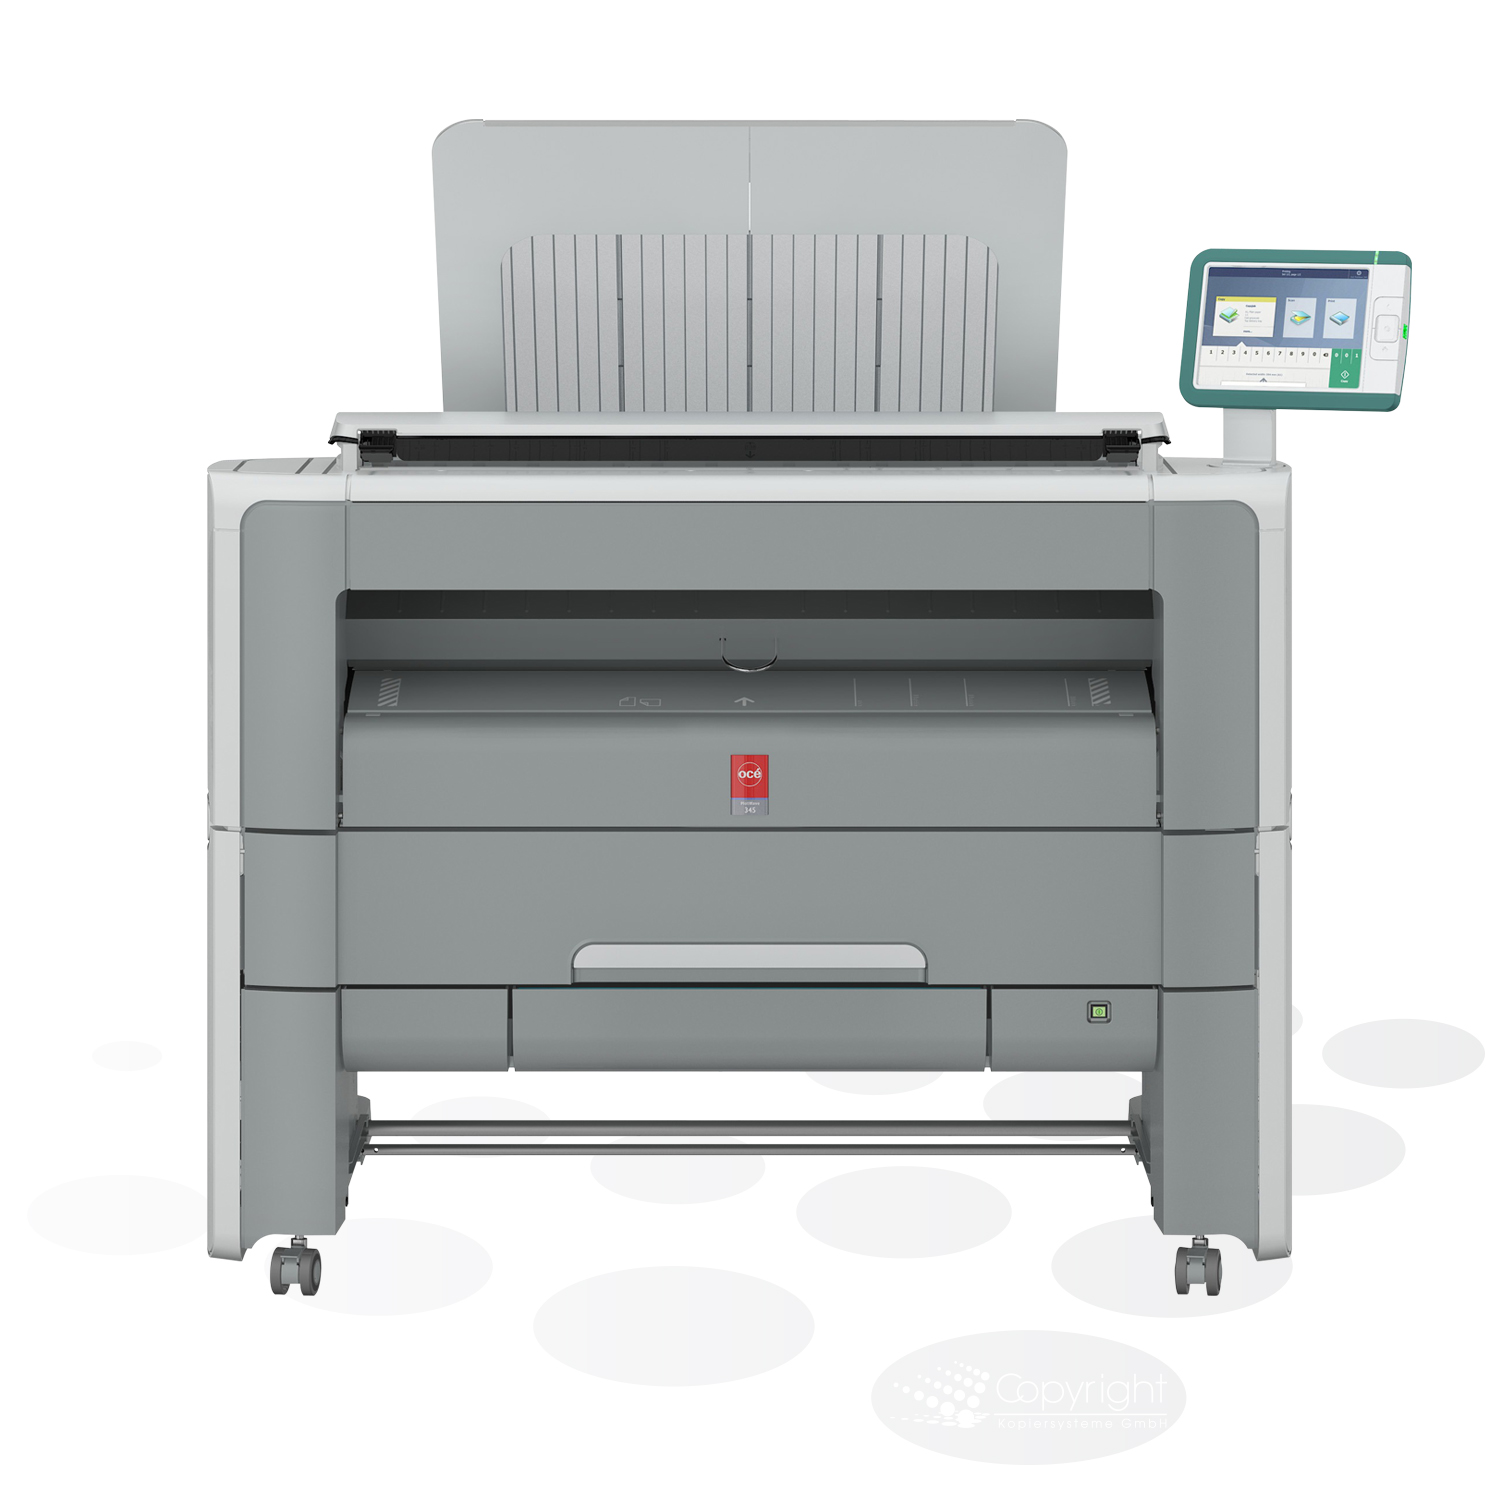 Plotwave 345 MFP_2